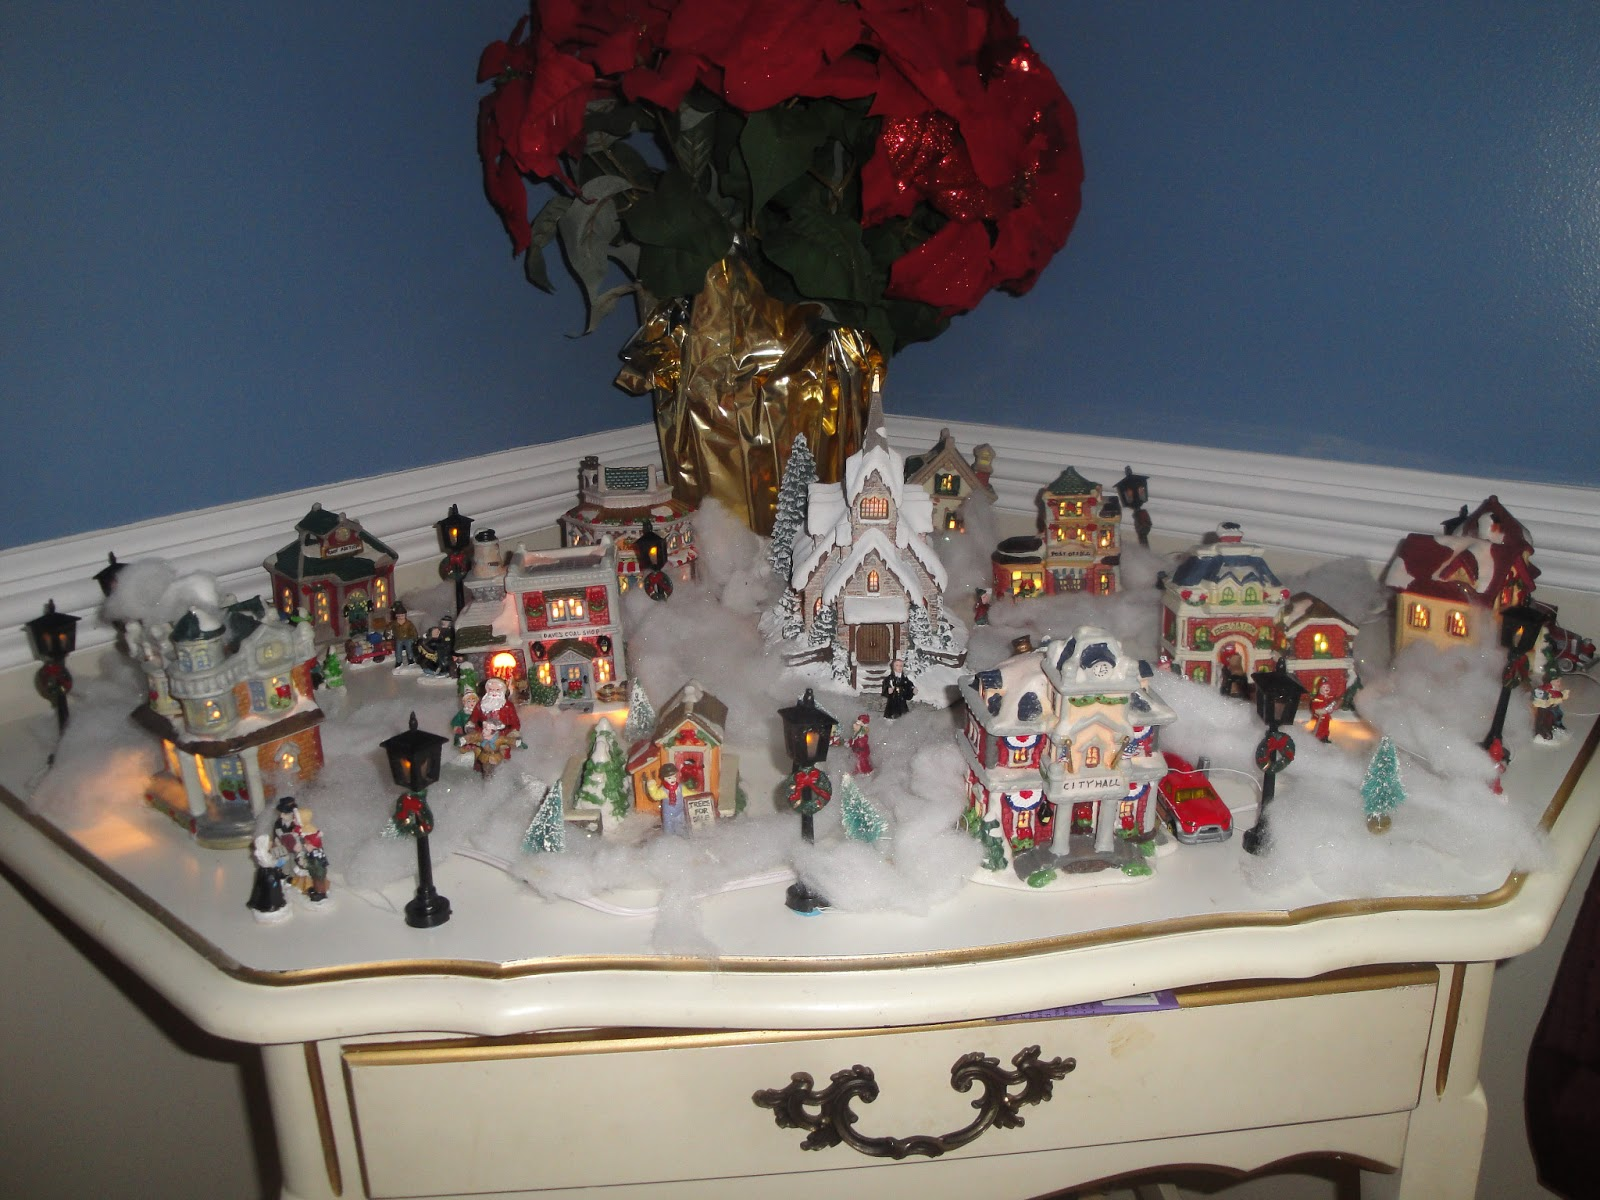 Decorating Ideas > Small Things Christmas Memories ~ 075812_Thanksgiving Village Decorations